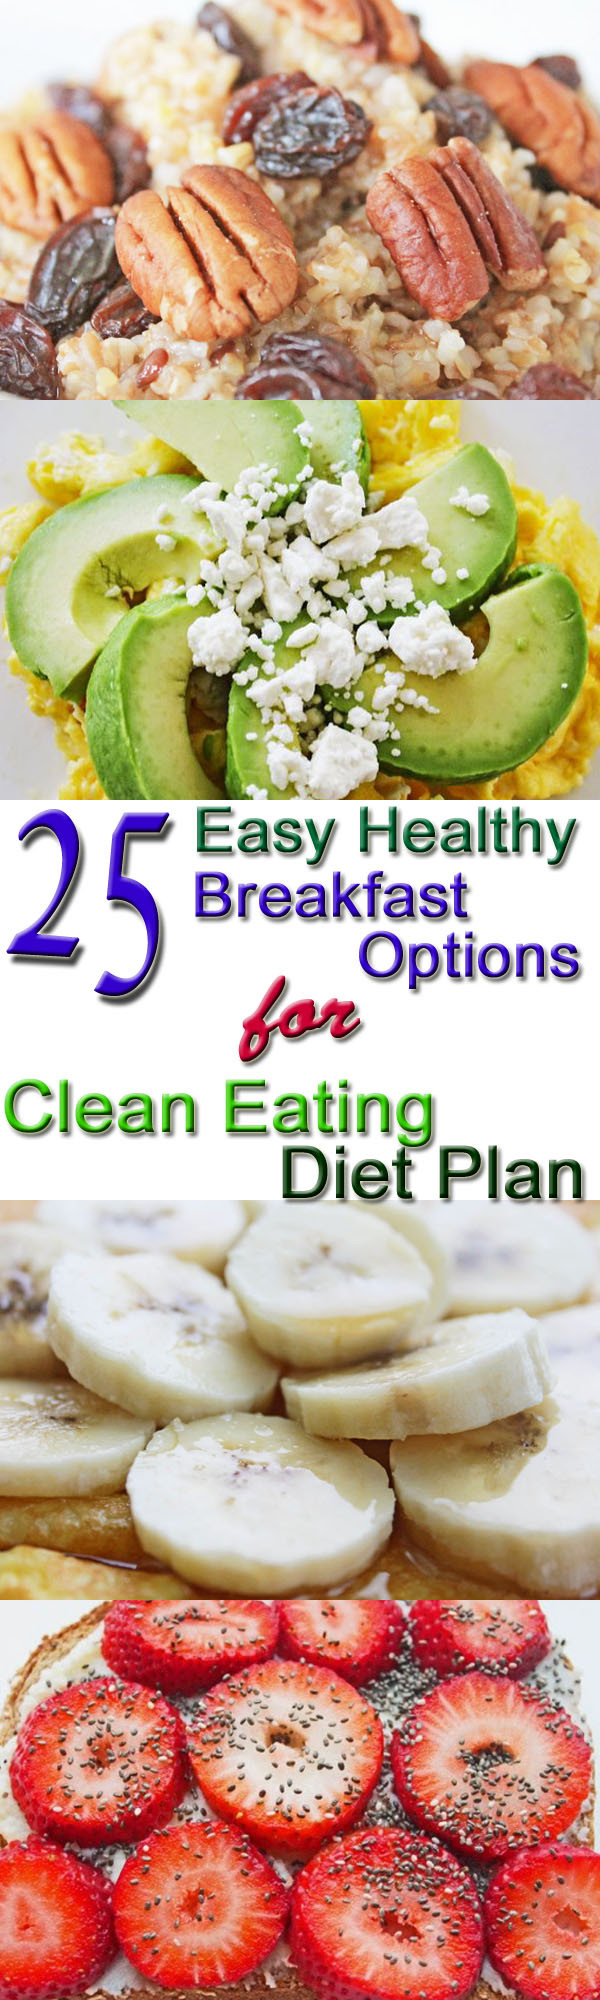 Clean Eating Recipes Breakfast  25 Healthy Breakfast Options